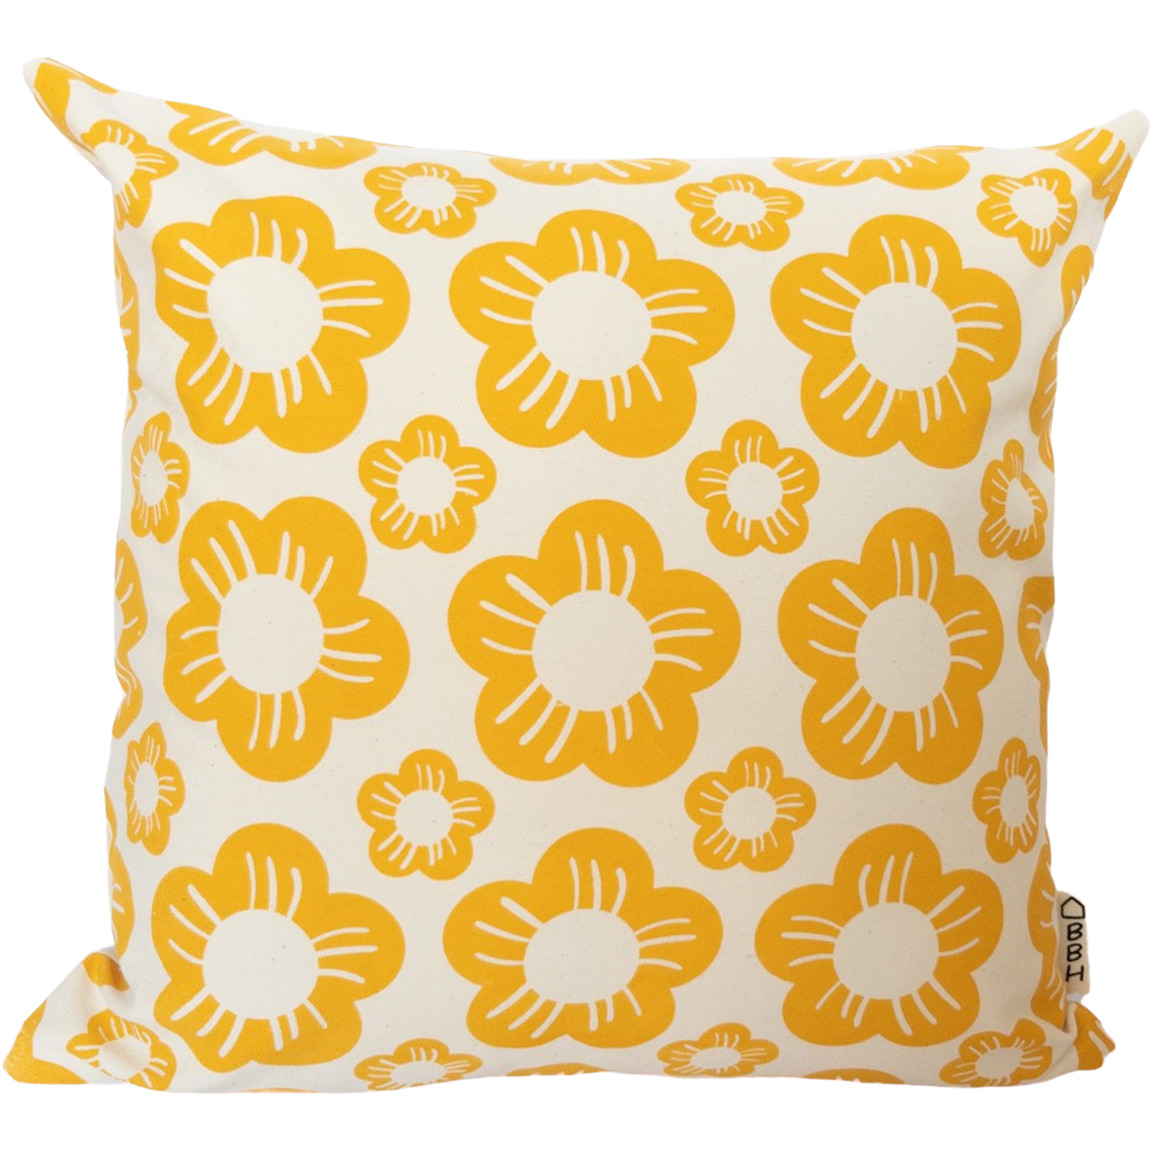 Vintage Inspired Flower Head Hand Screen Printed 100% cotton cushion cover-3 Colourways-Cover Only | Trada Marketplace